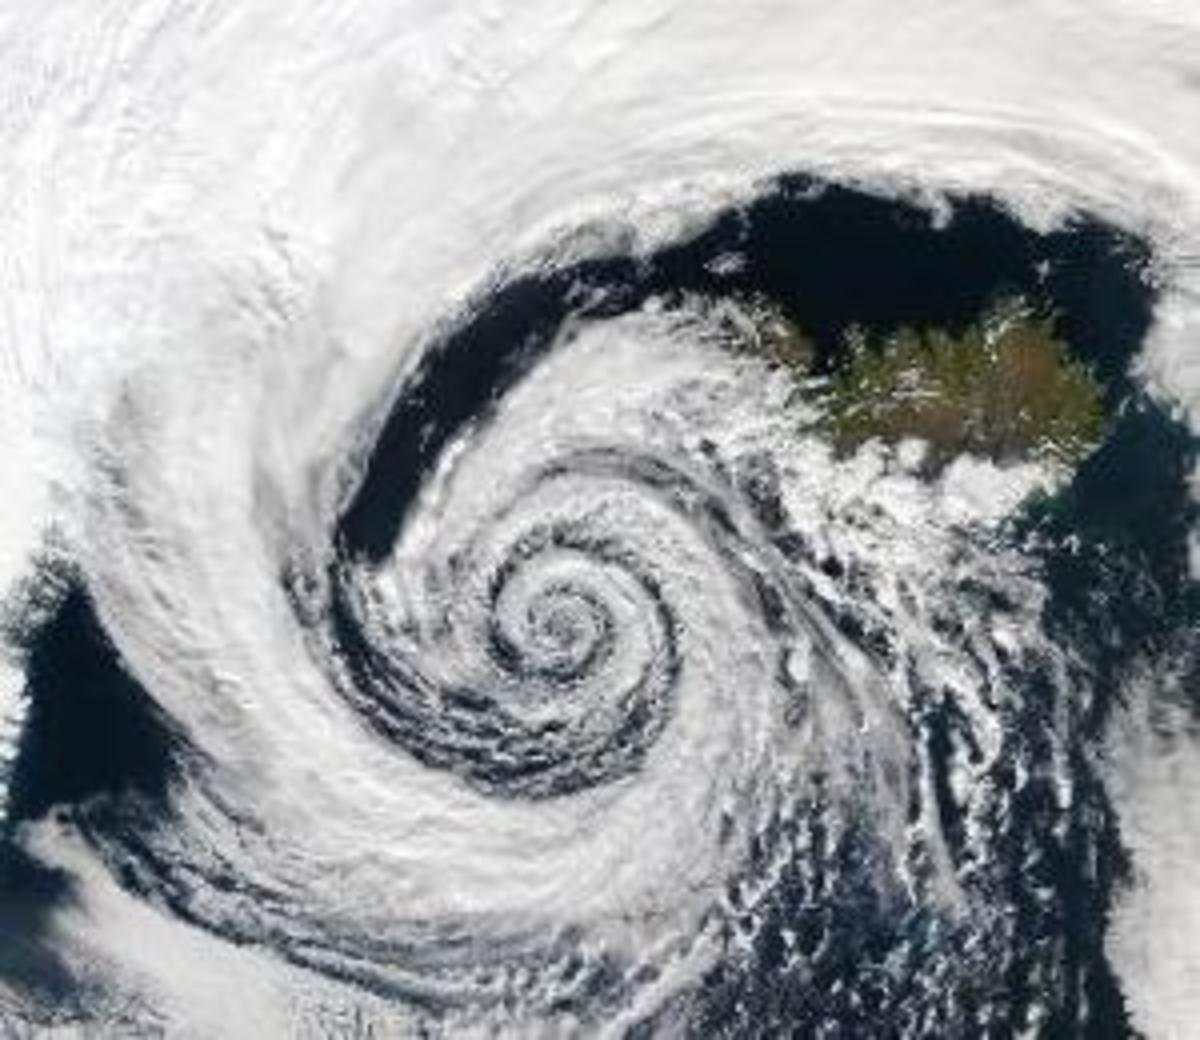 The Coriolis effect shapes all storm fronts, giving the characteristic spiral effect seen here between cold and hot air.